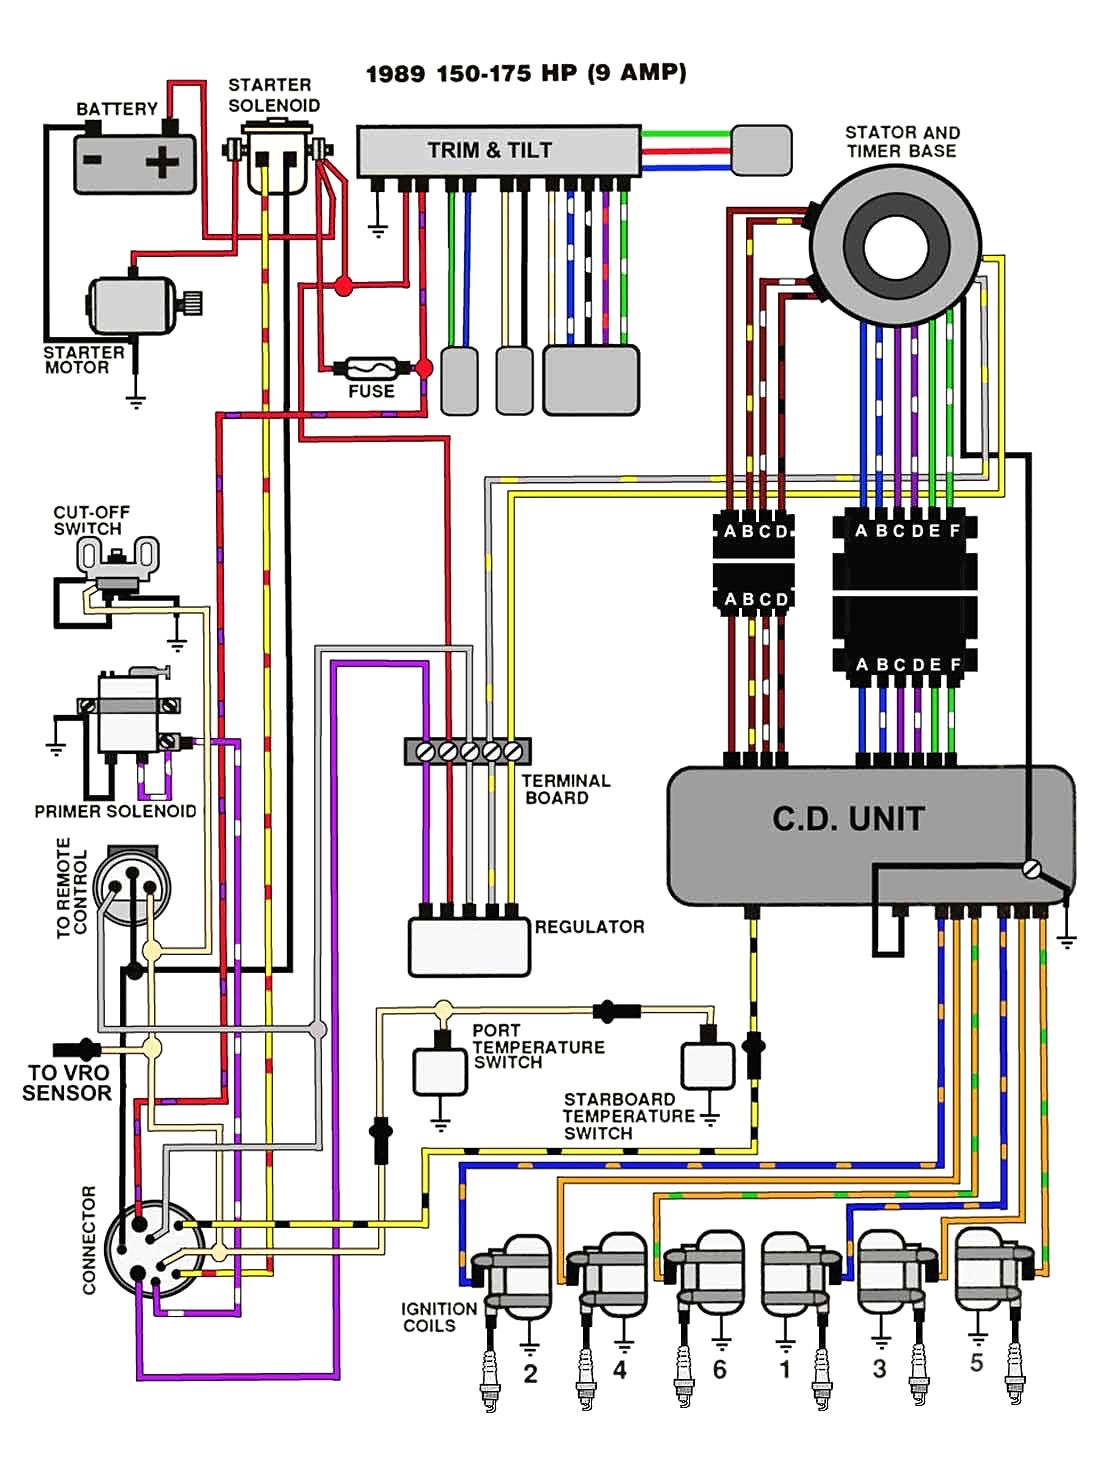 alpine v12 amp wiring diagram wiring diagram worldalpine v12 amp wiring diagram data diagram schematic alpine [ 1100 x 1461 Pixel ]